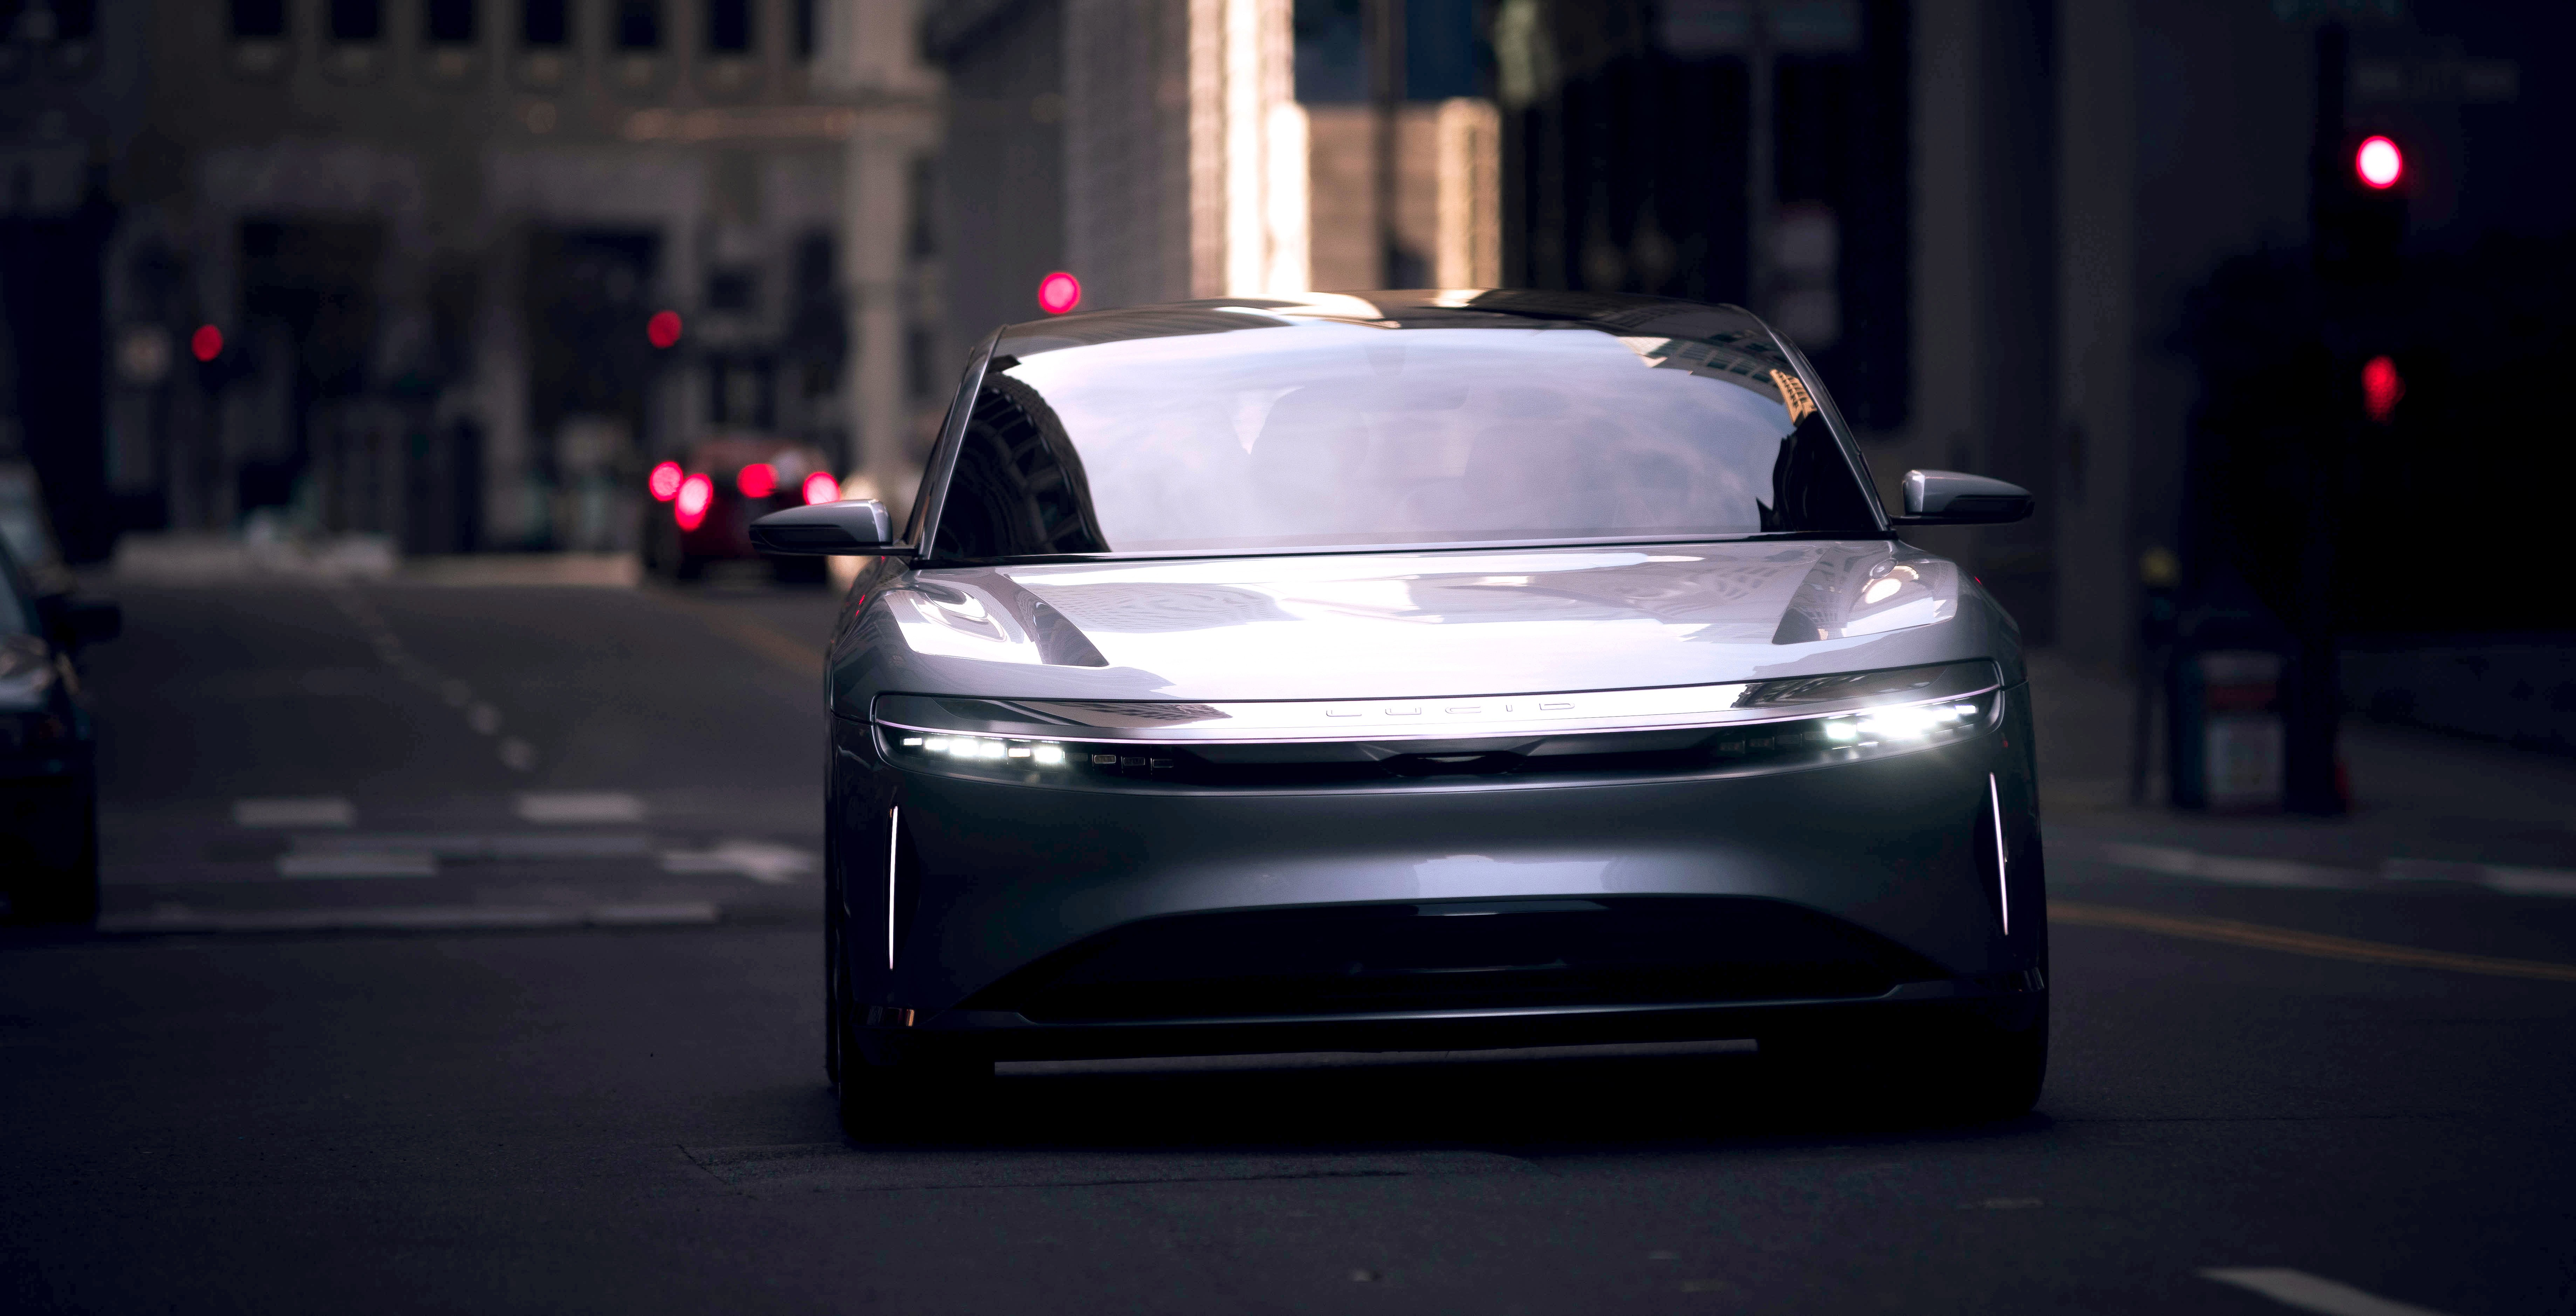 Lucid Motors 400 Hp Electric Model Starts At 52 500 With Federal Tax Credit Autoevolution